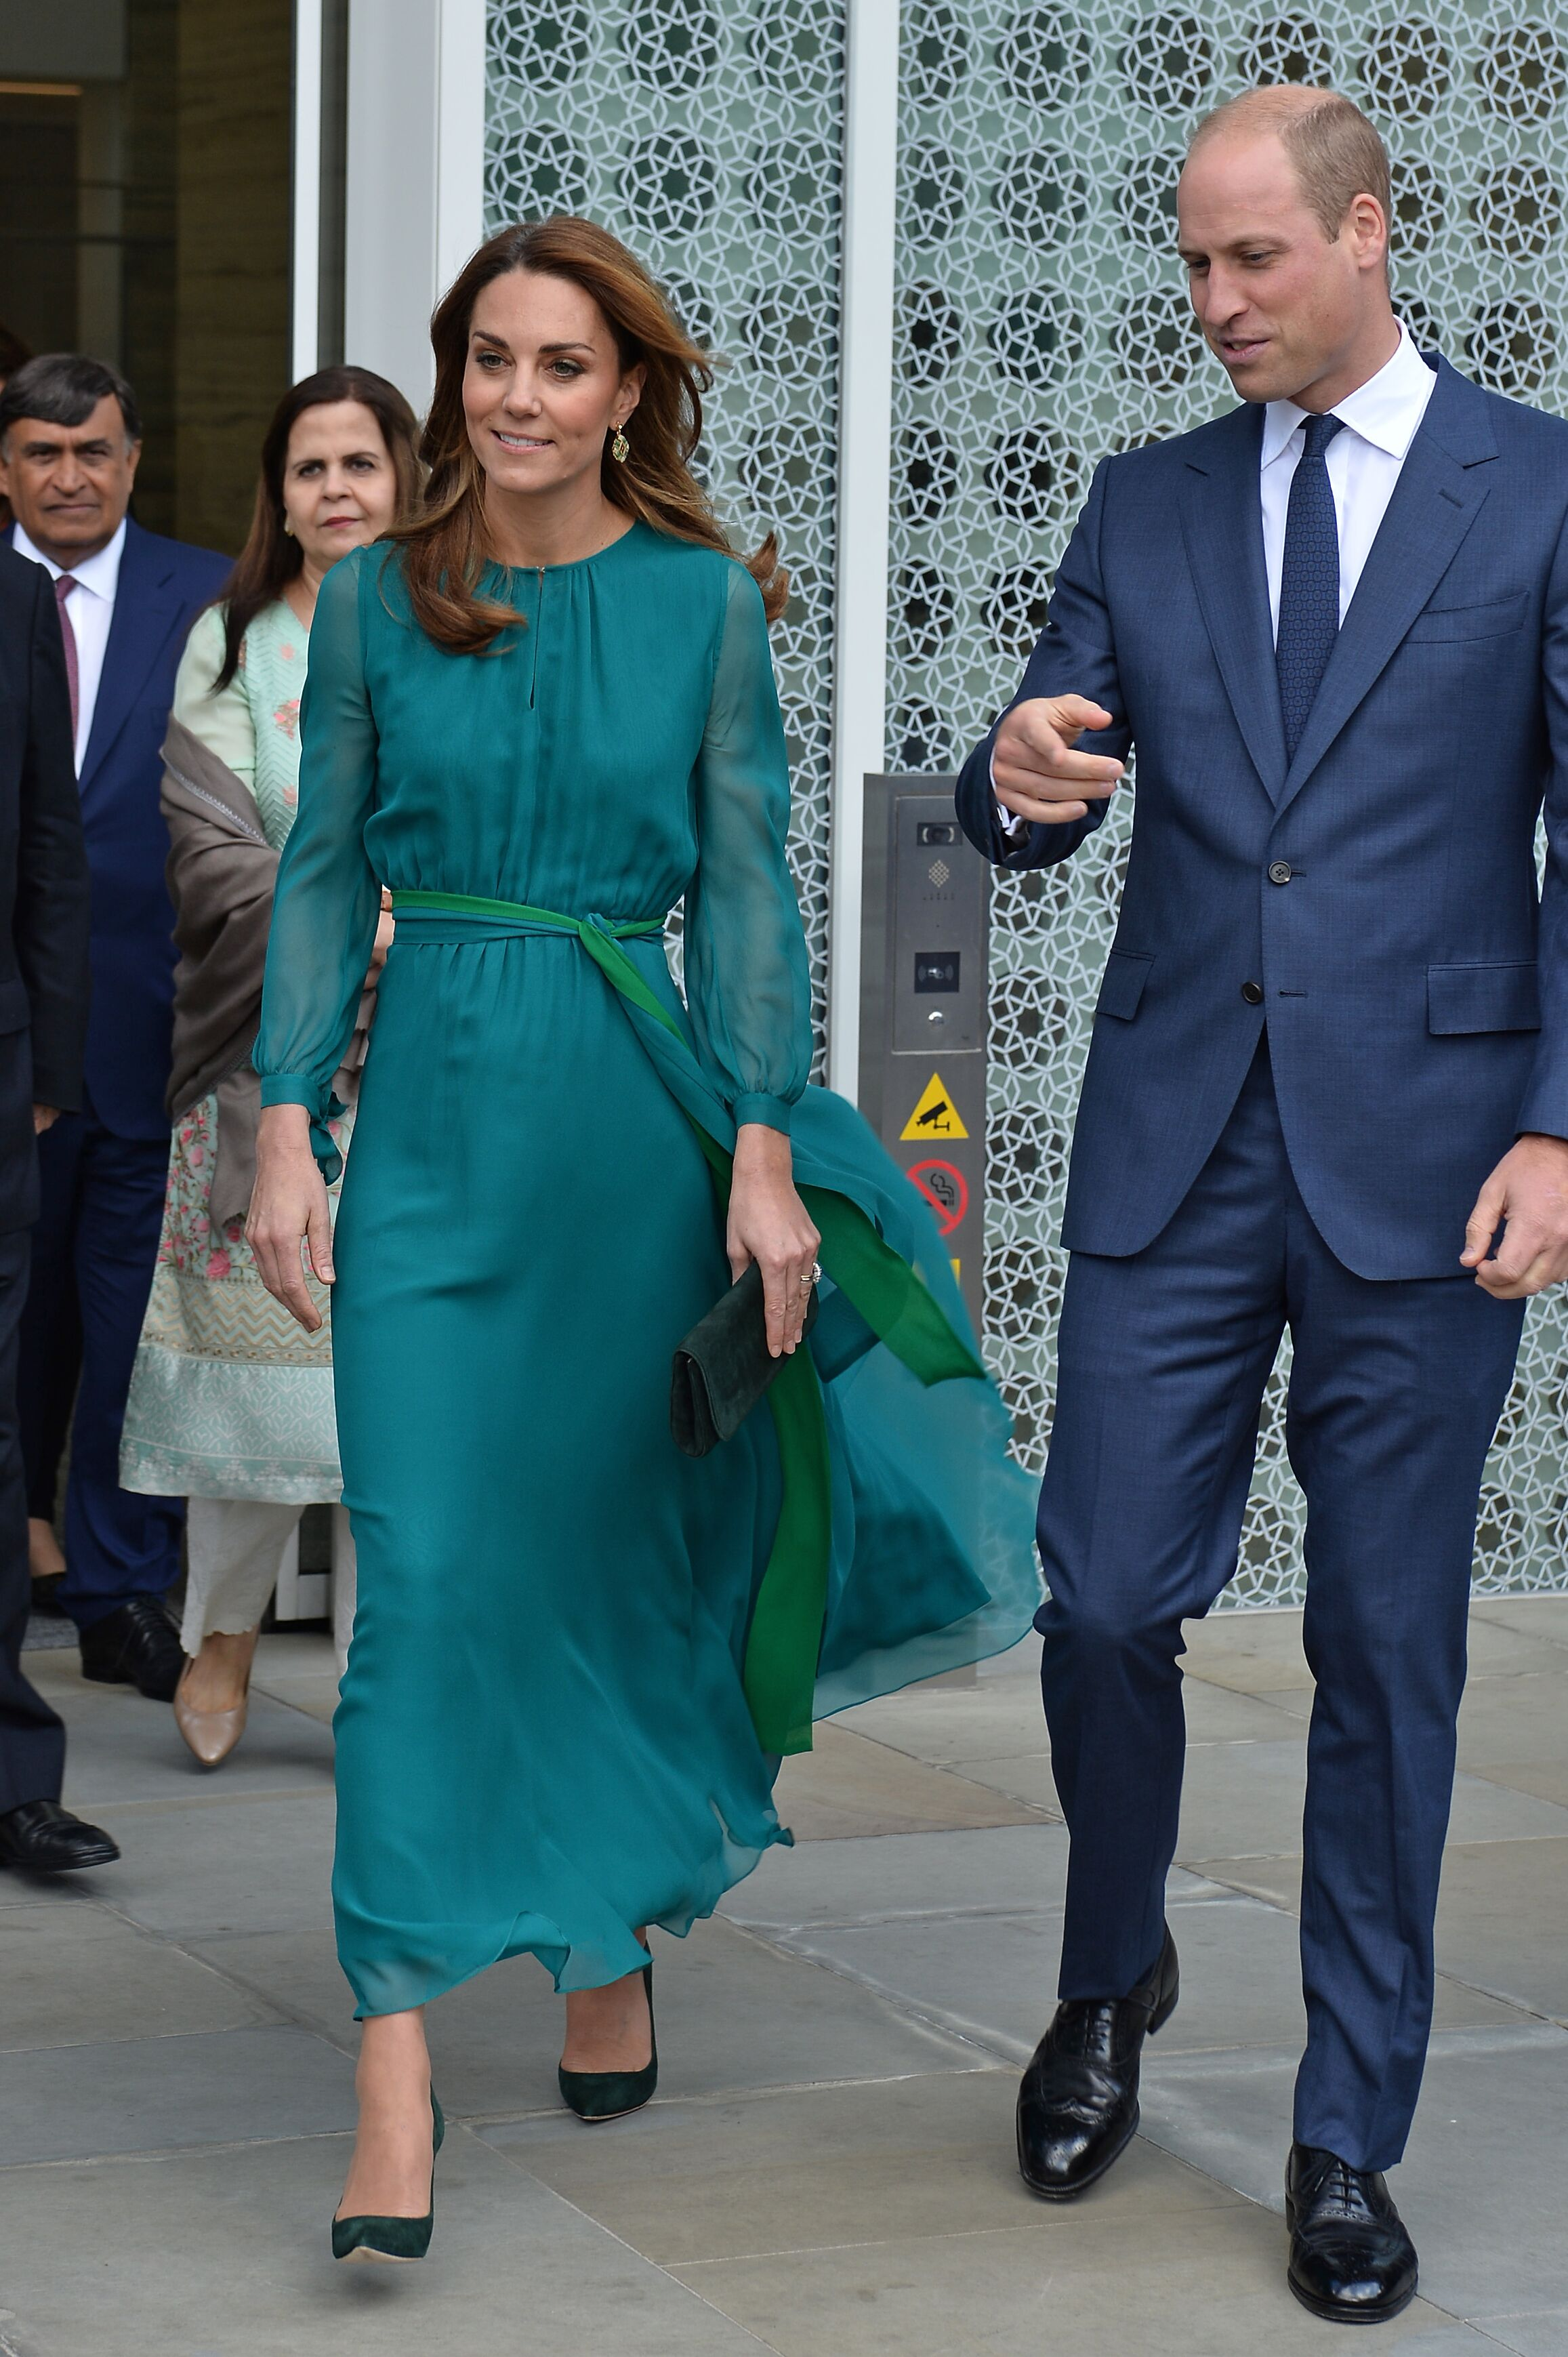 Prince William and Kate Middleton visit the Aga Khan Centre. | Source: Getty Images